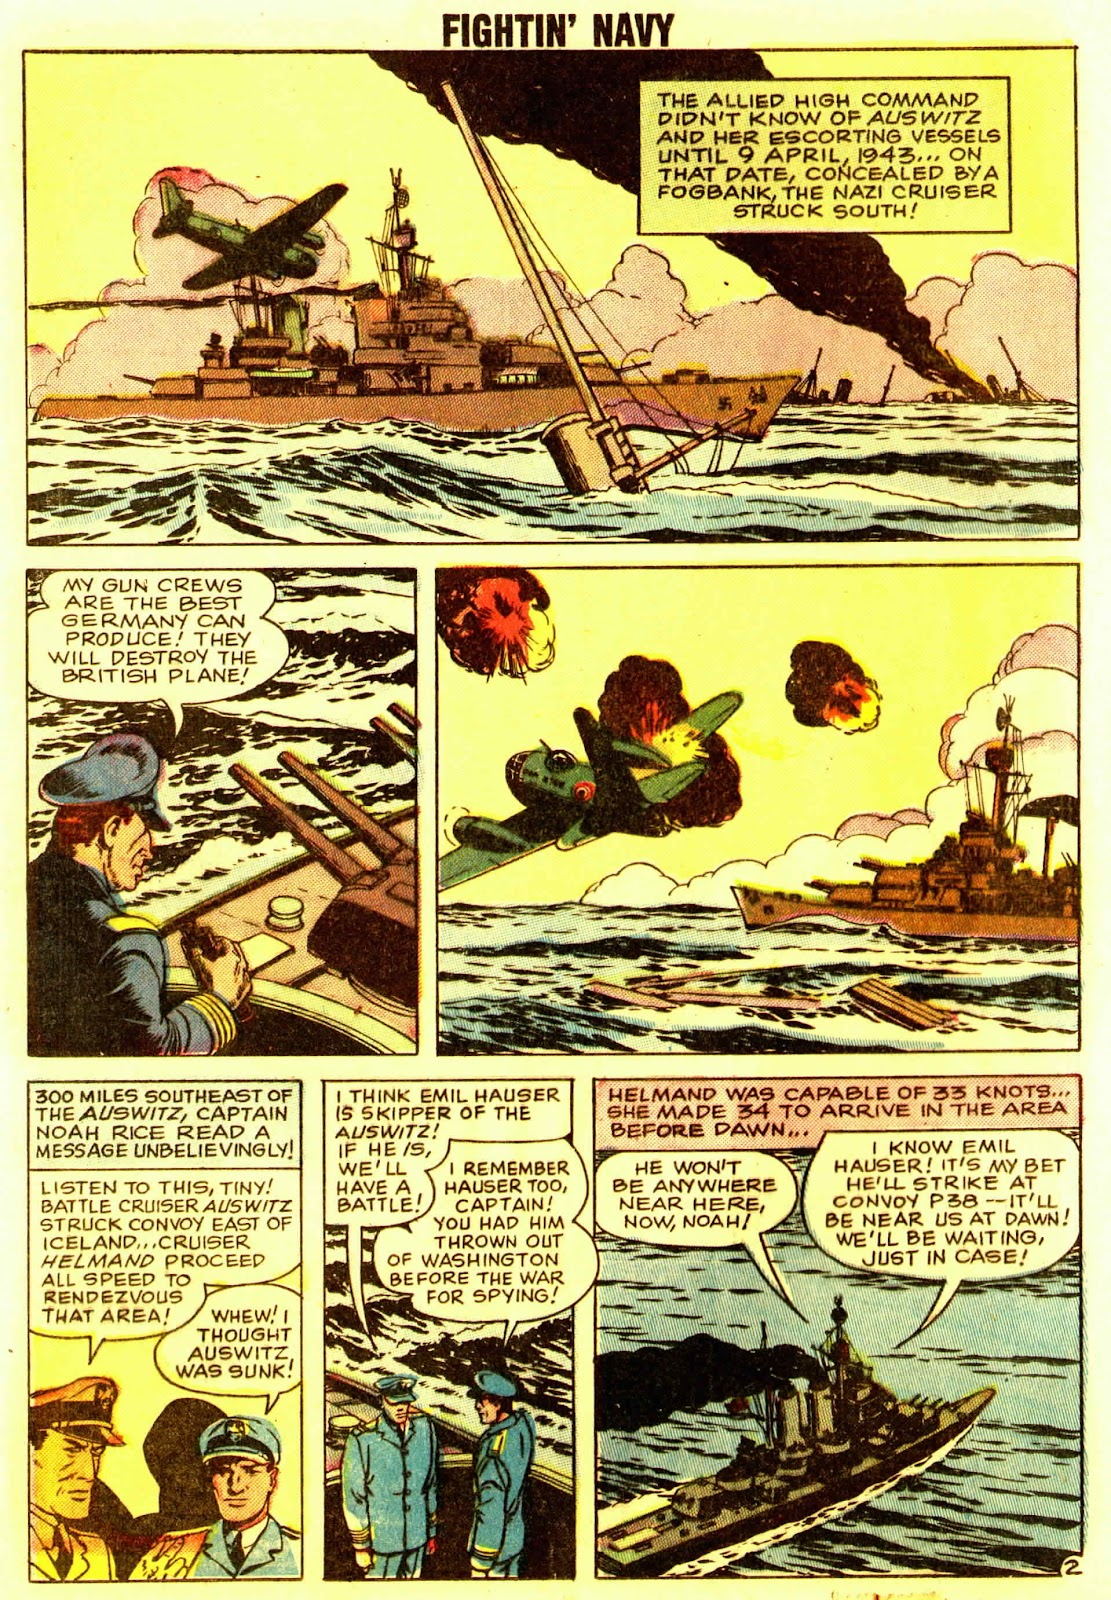 Read online Fightin' Navy comic -  Issue #83 - 76